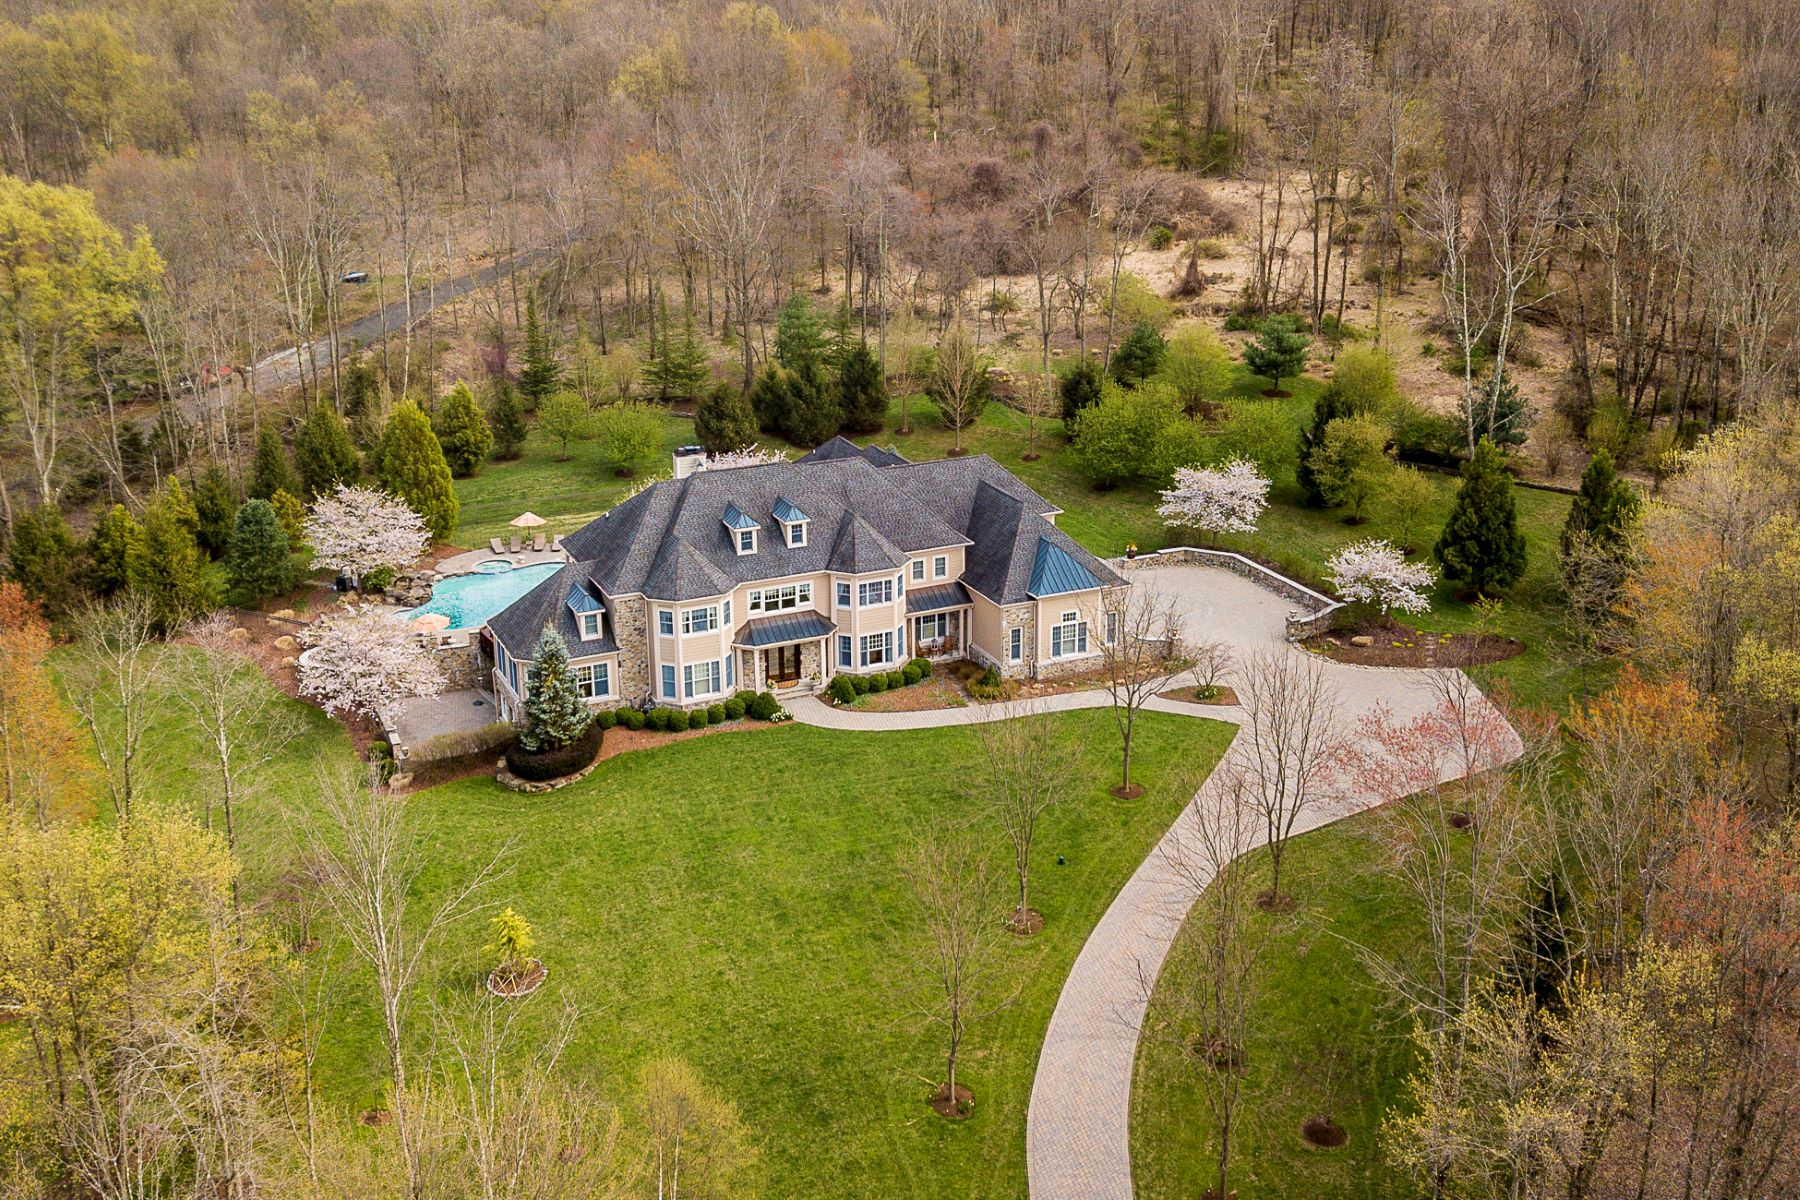 Single Family Homes for Sale at An Oasis Of Luxury Custom Built to the Highest Standards 239 Zion Road, Hillsborough, New Jersey 08844 United States